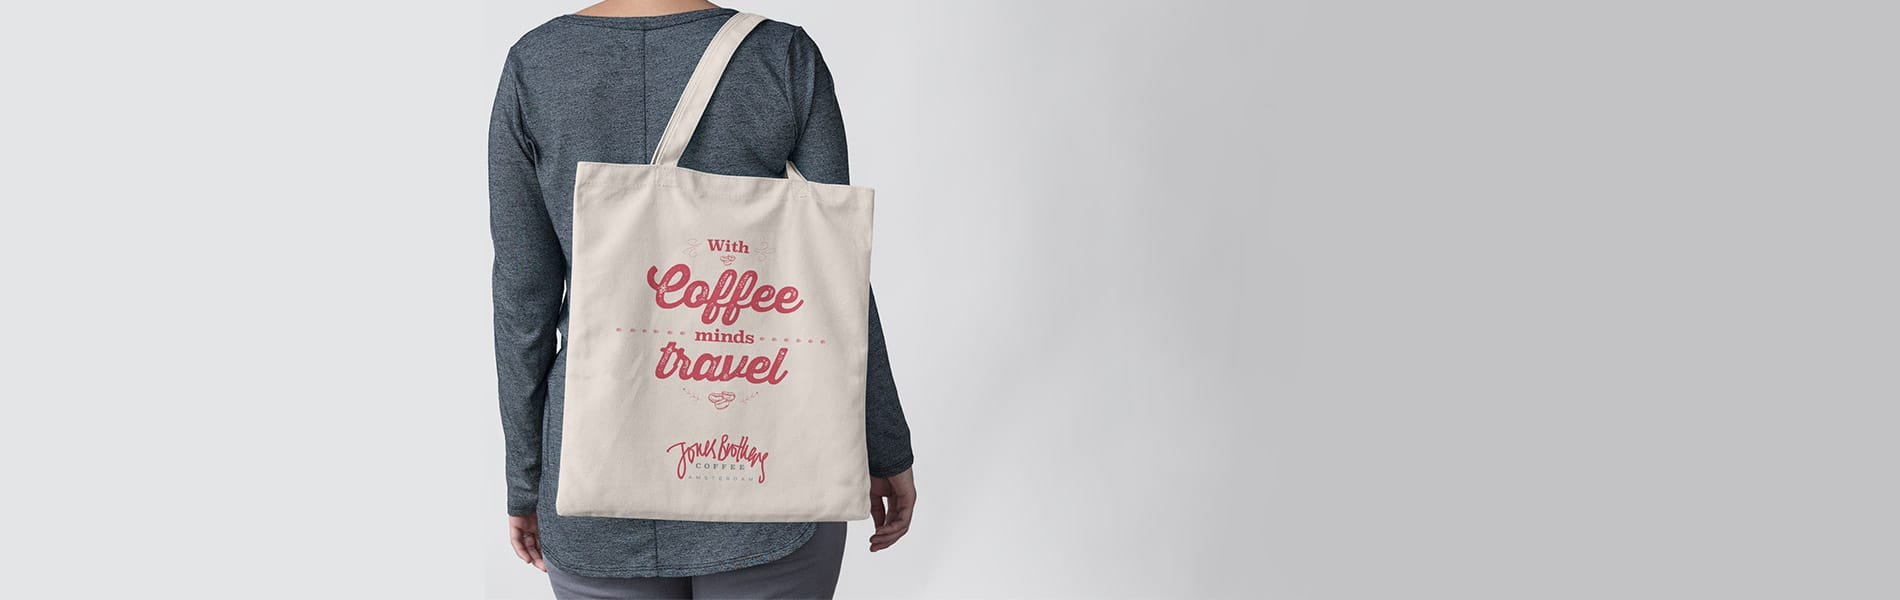 PRODUCT-TOTE-1900×600